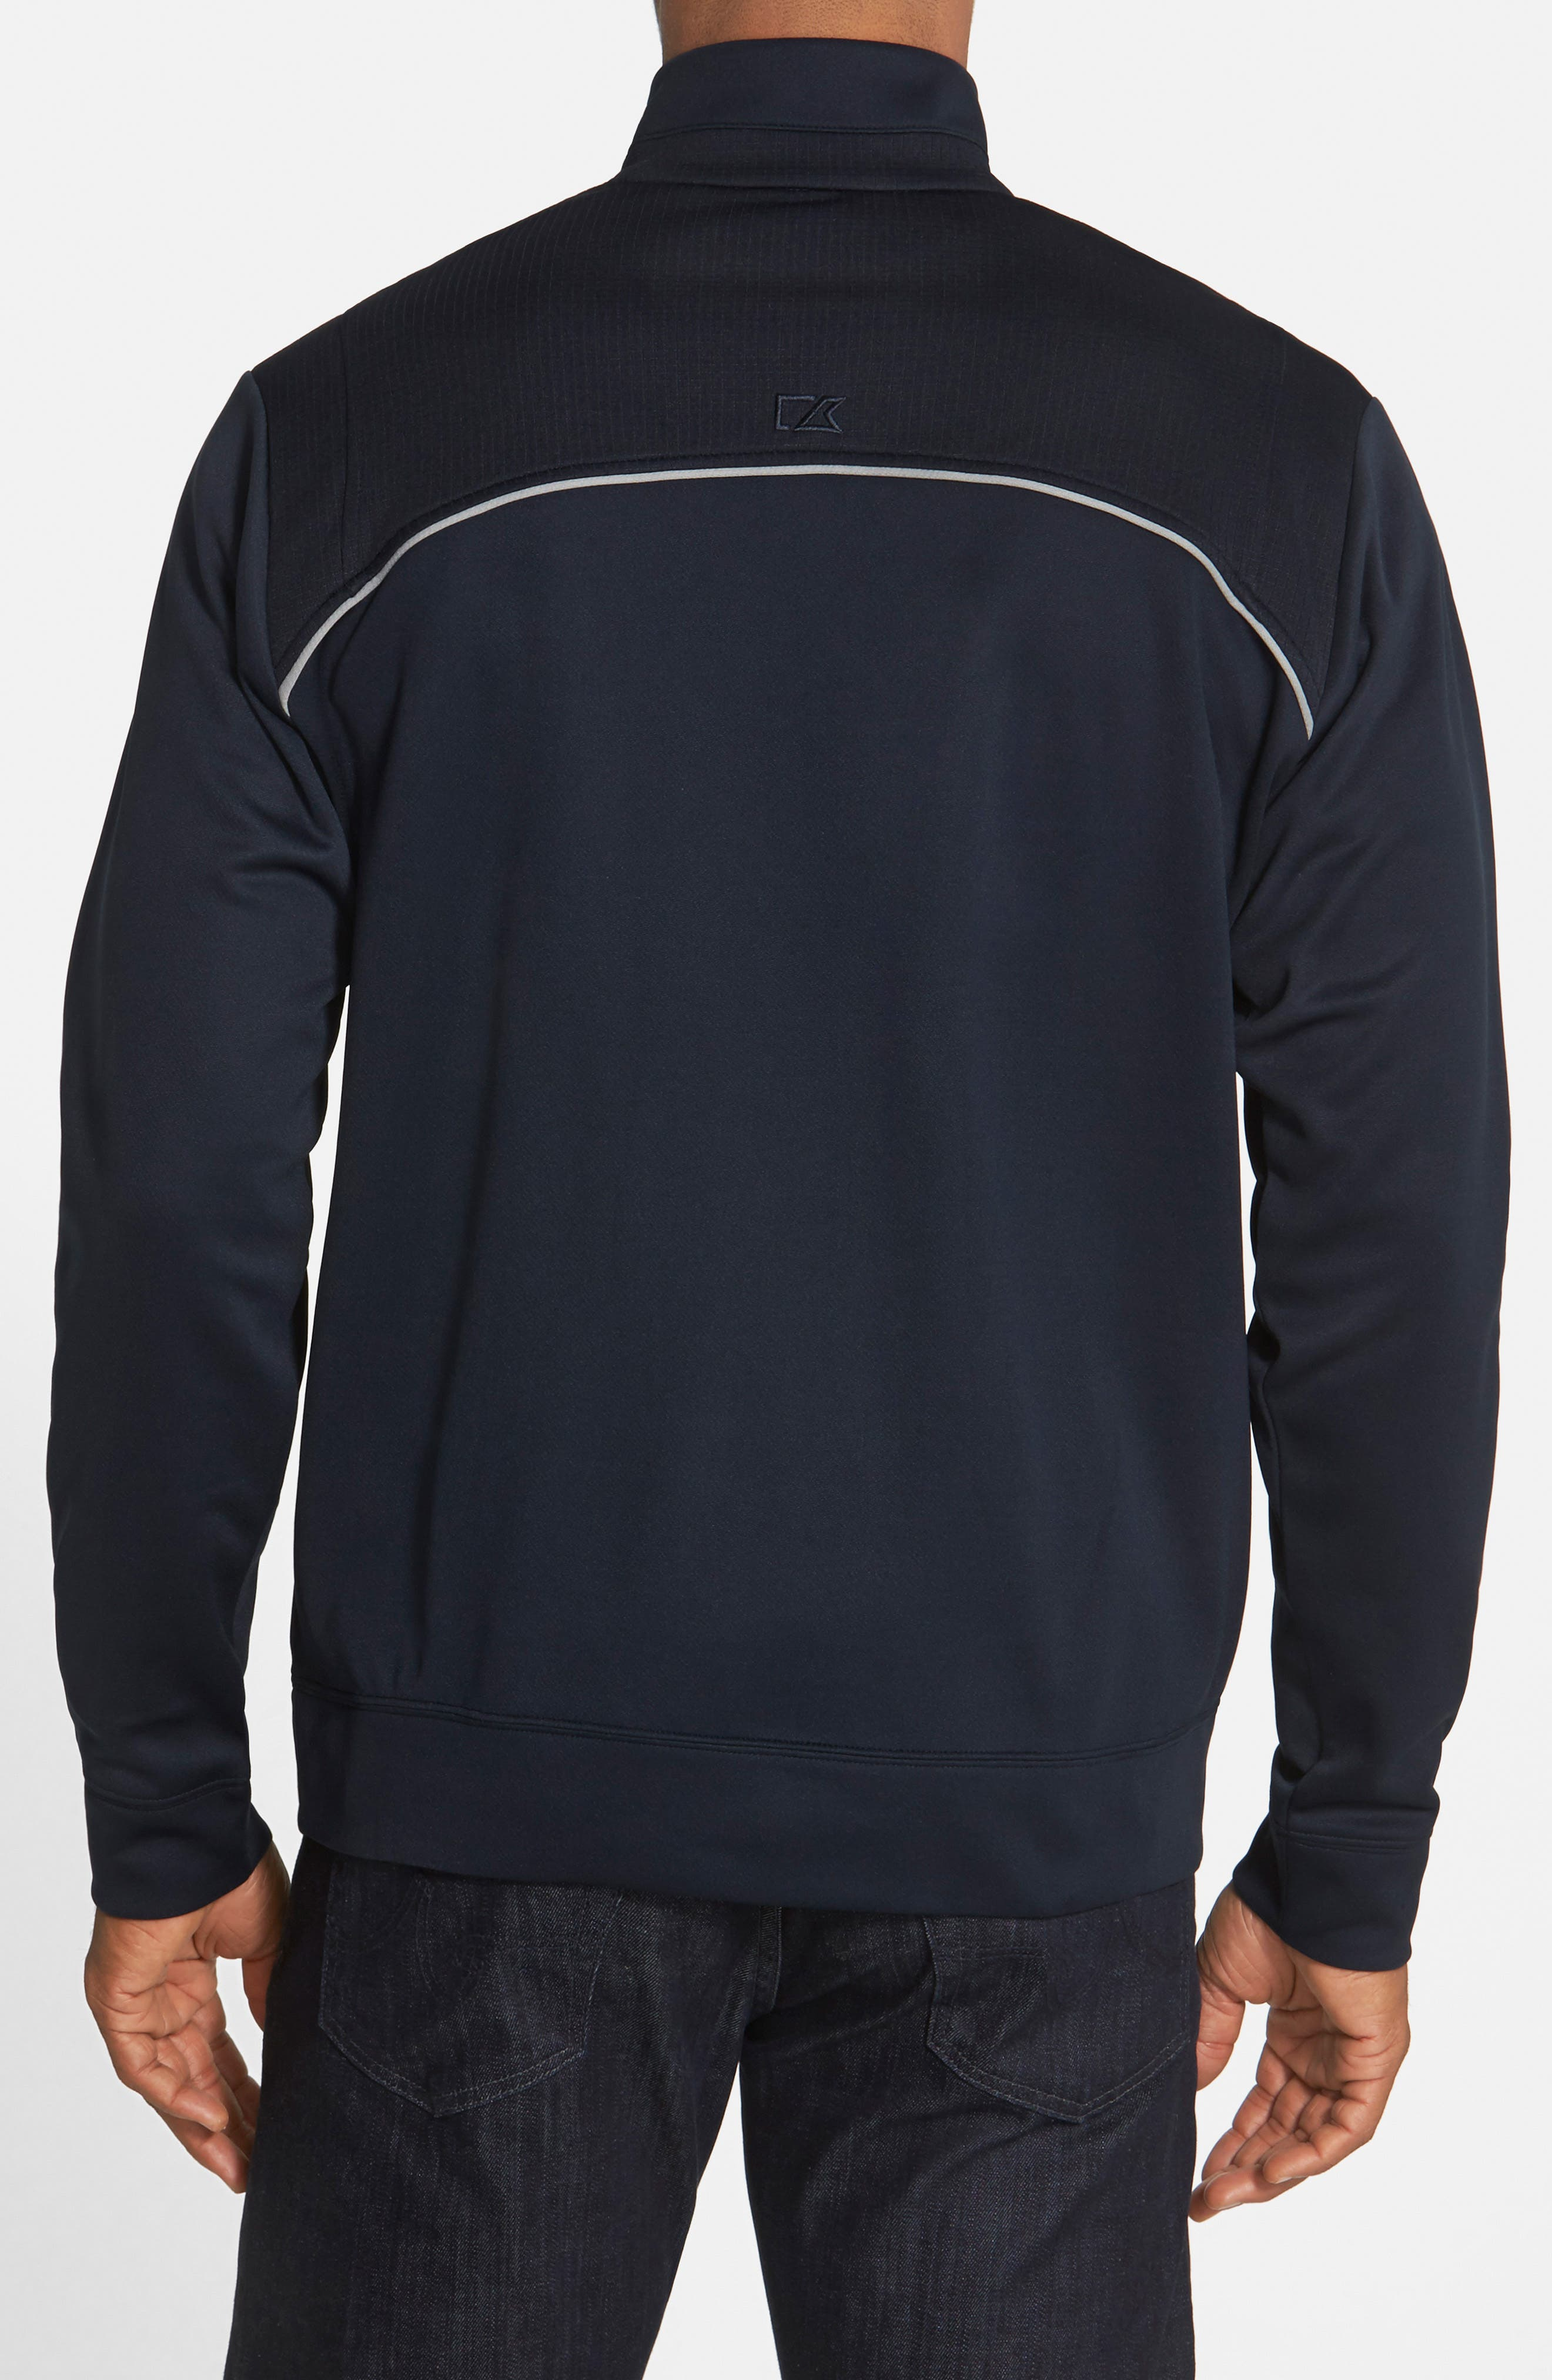 CUTTER & BUCK, Ridge WeatherTec Wind & Water Resistant Pullover, Alternate thumbnail 5, color, NAVY BLUE